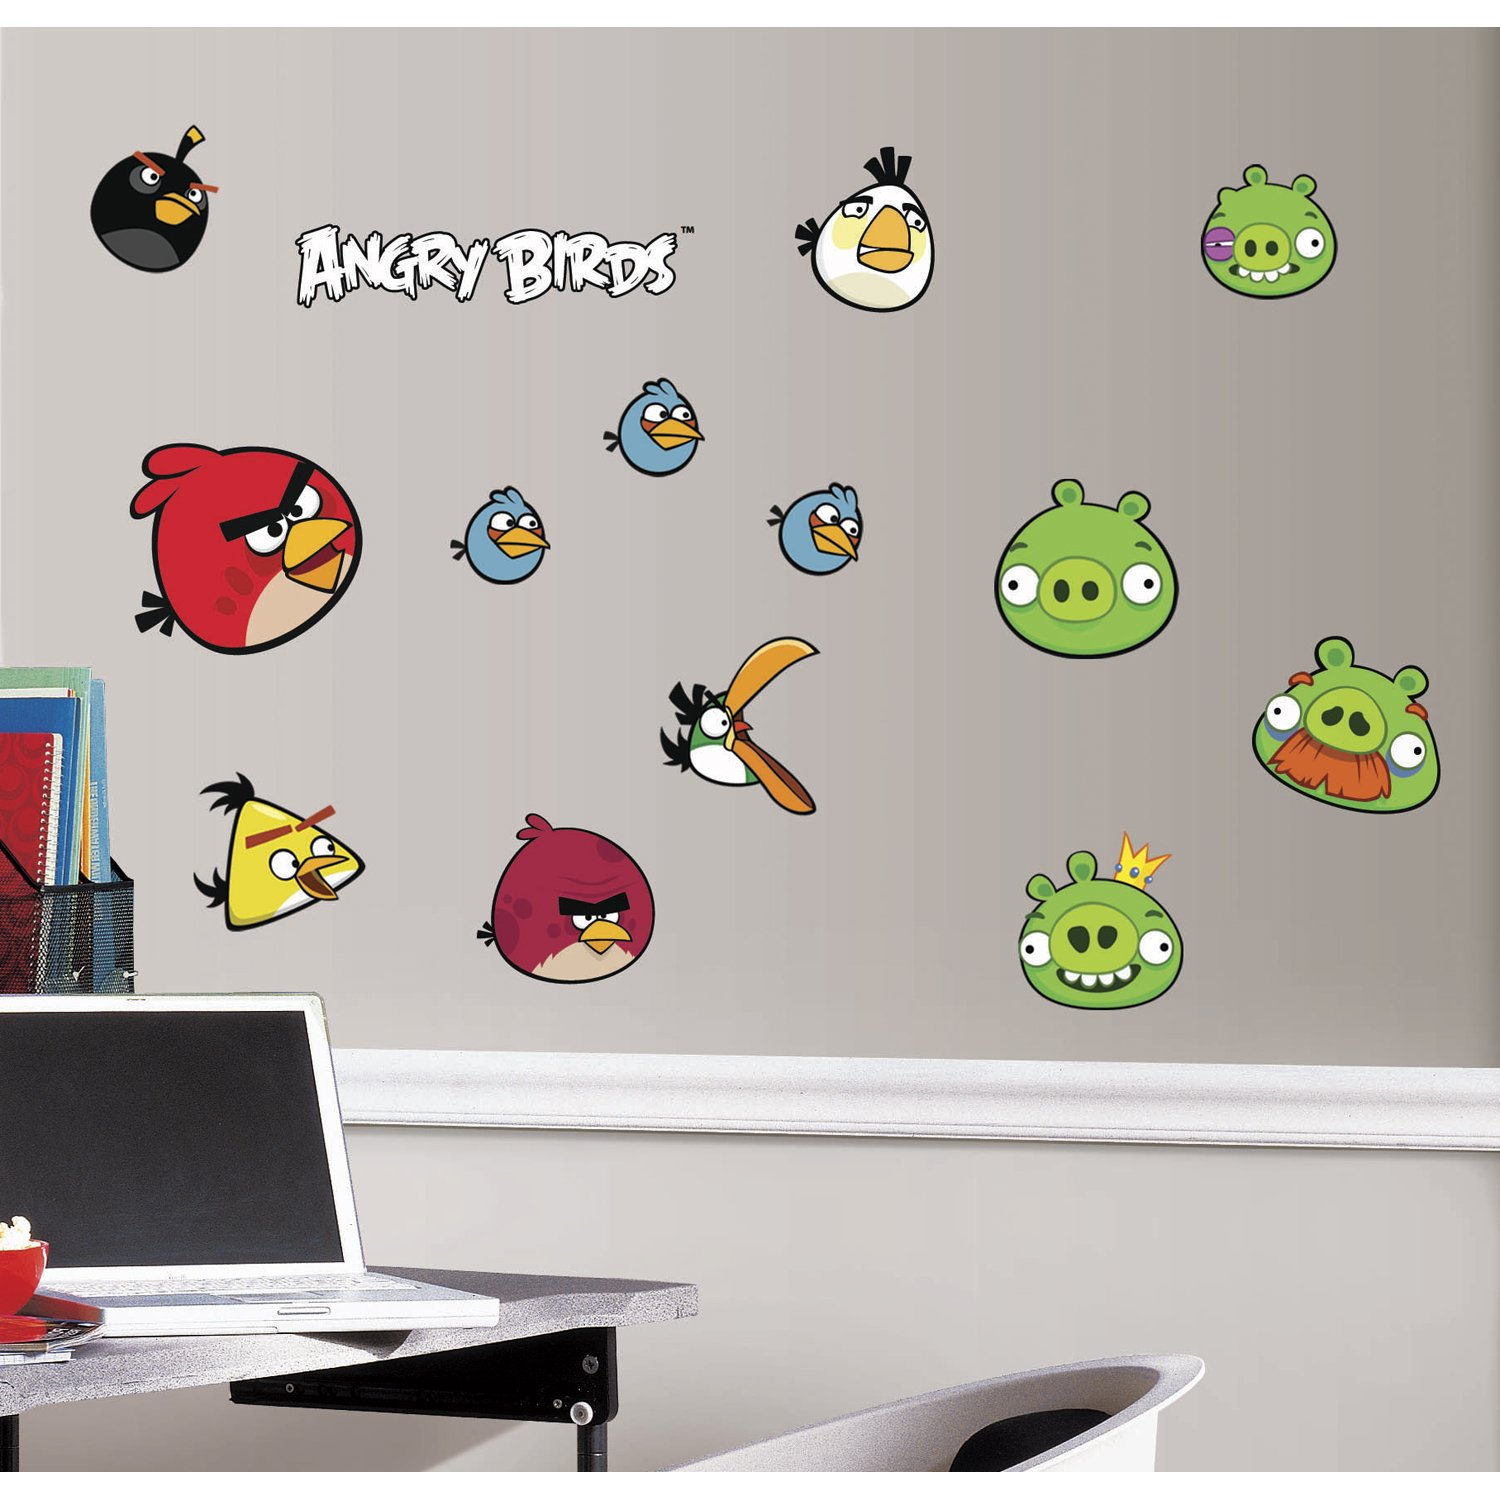 Roommates rmk1794scs angry birds peel and stick wall decals wall roommates rmk1794scs angry birds peel and stick wall decals wall stickers murals amazon canada amipublicfo Images